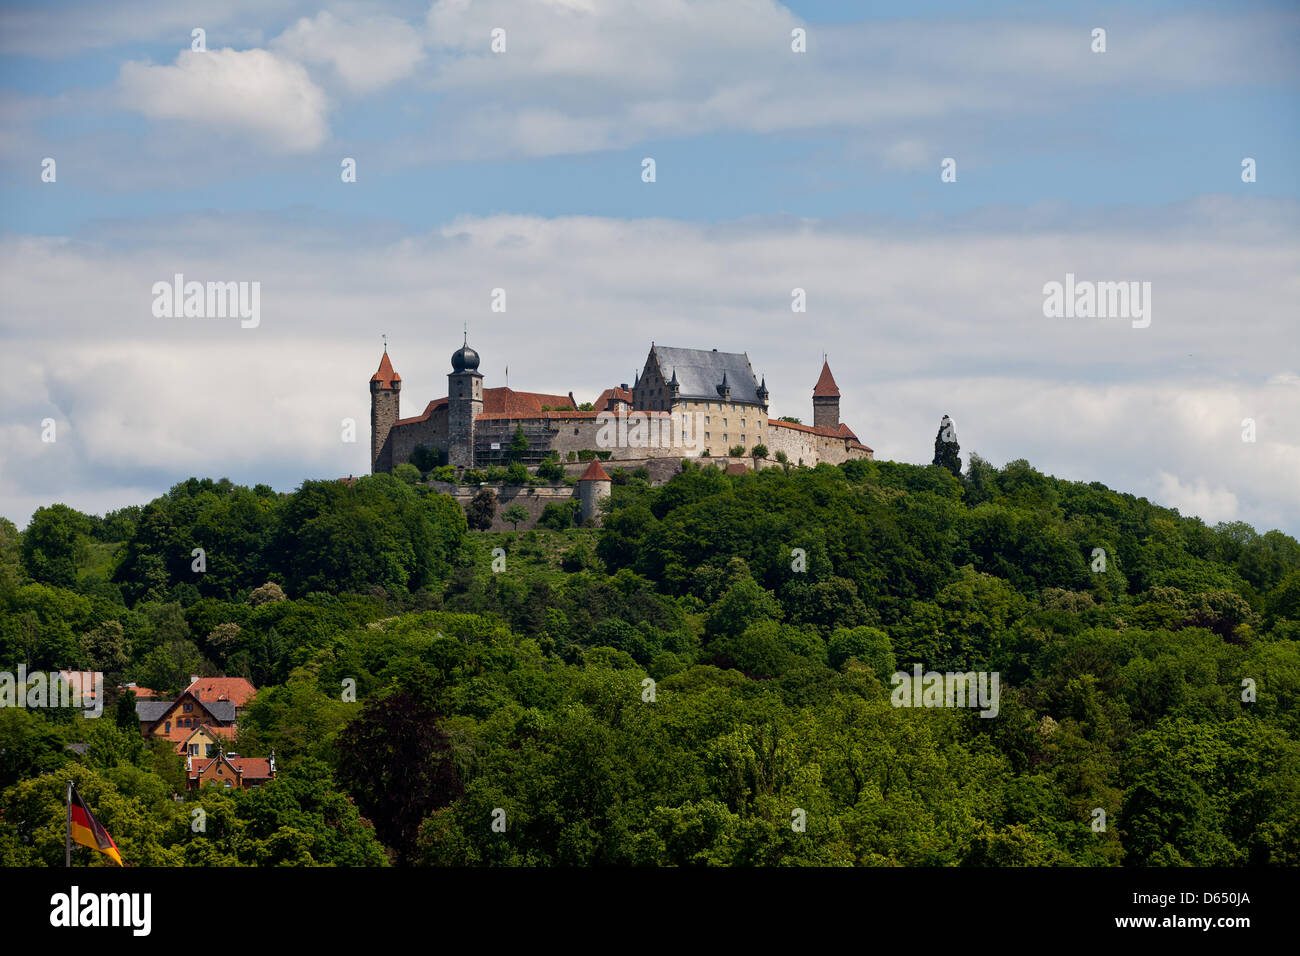 View of Coburg fortress in Coburg, Germany, 27 May 2012. The castle was first mentioned in a document in 1056. The - Stock Image